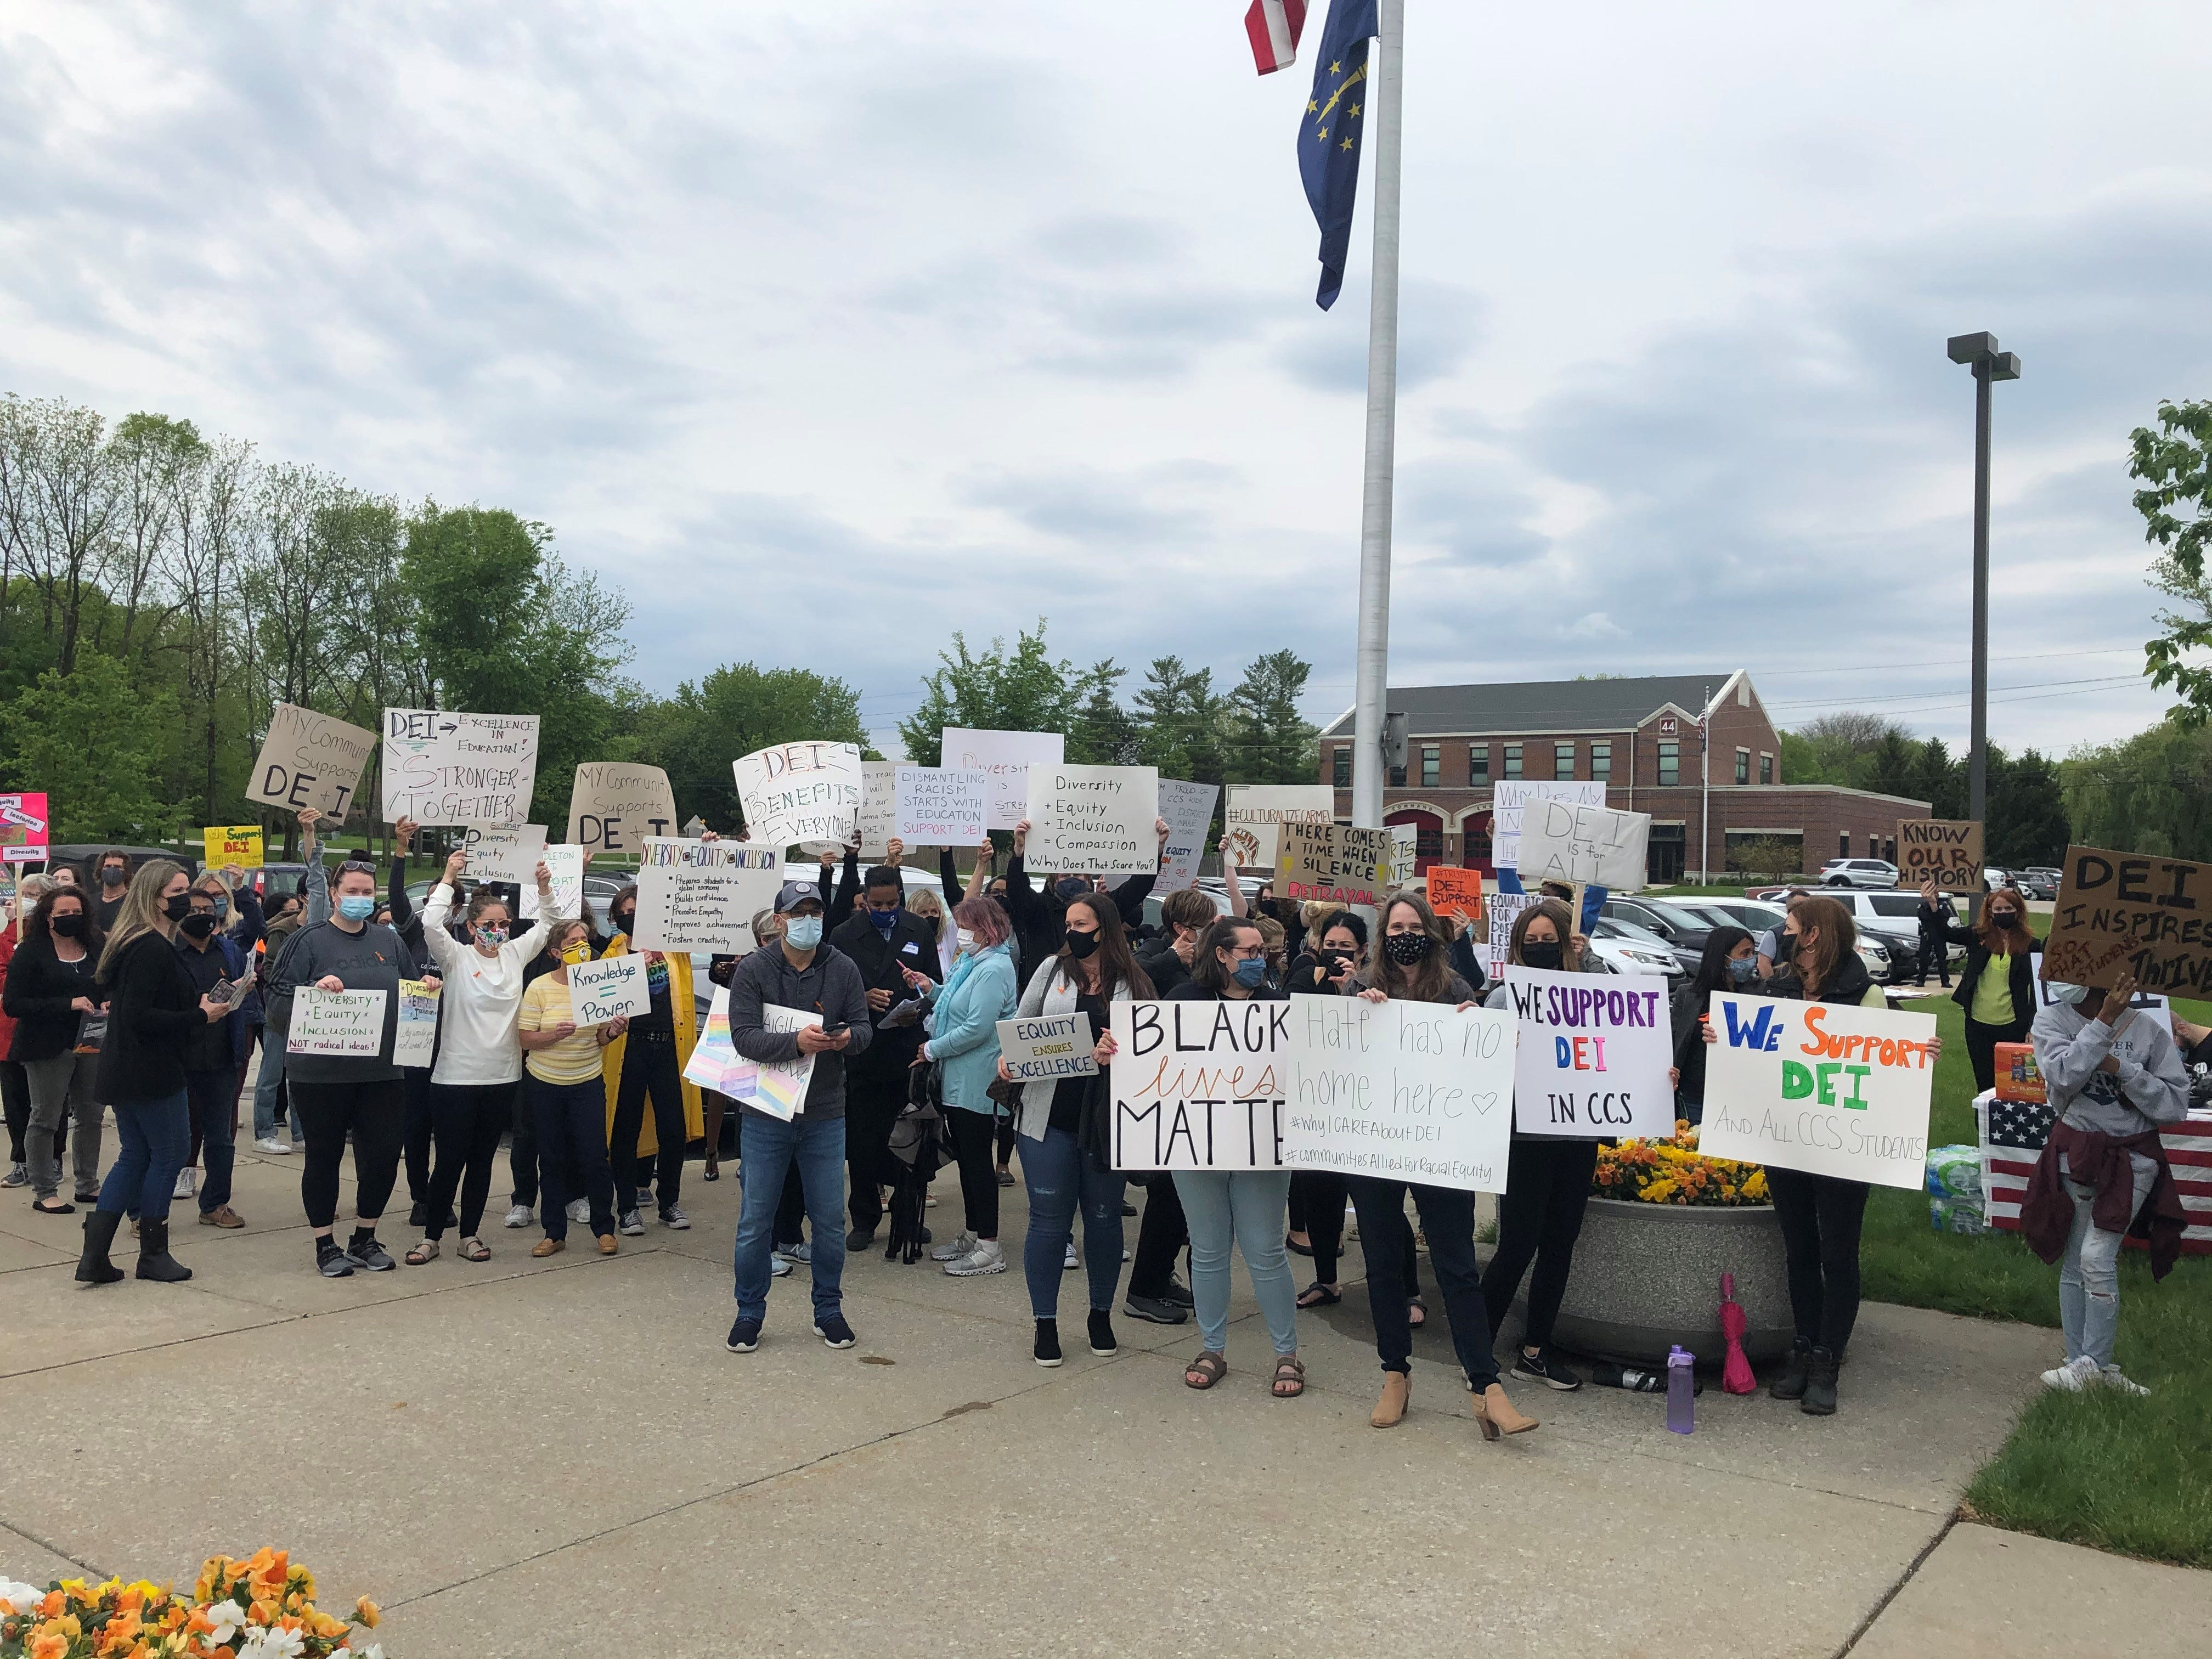 A crowd starts to gather ahead of the Carmel Clay School Board meeting on May 17, 2021. This group carried signs to support DEI work in the district.